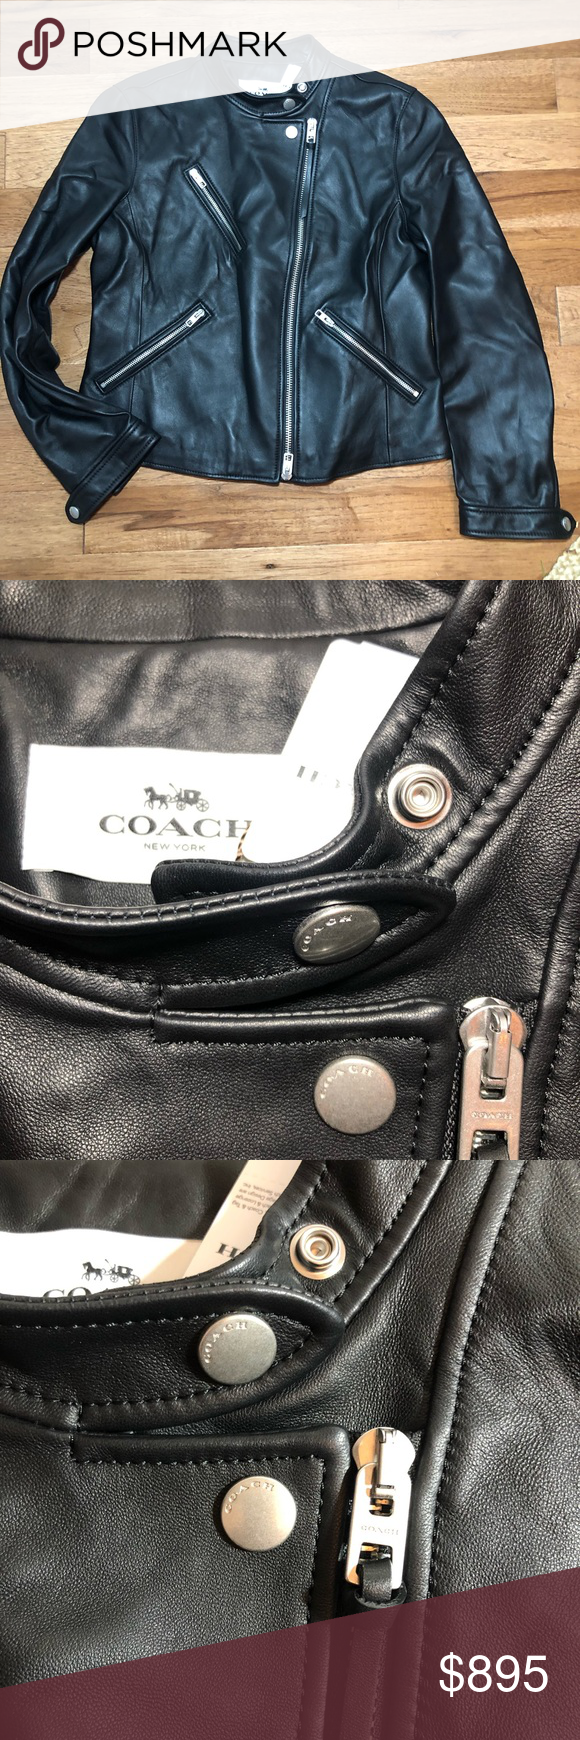 Coach Uptown Racer Leather Moto Jacket Leather moto